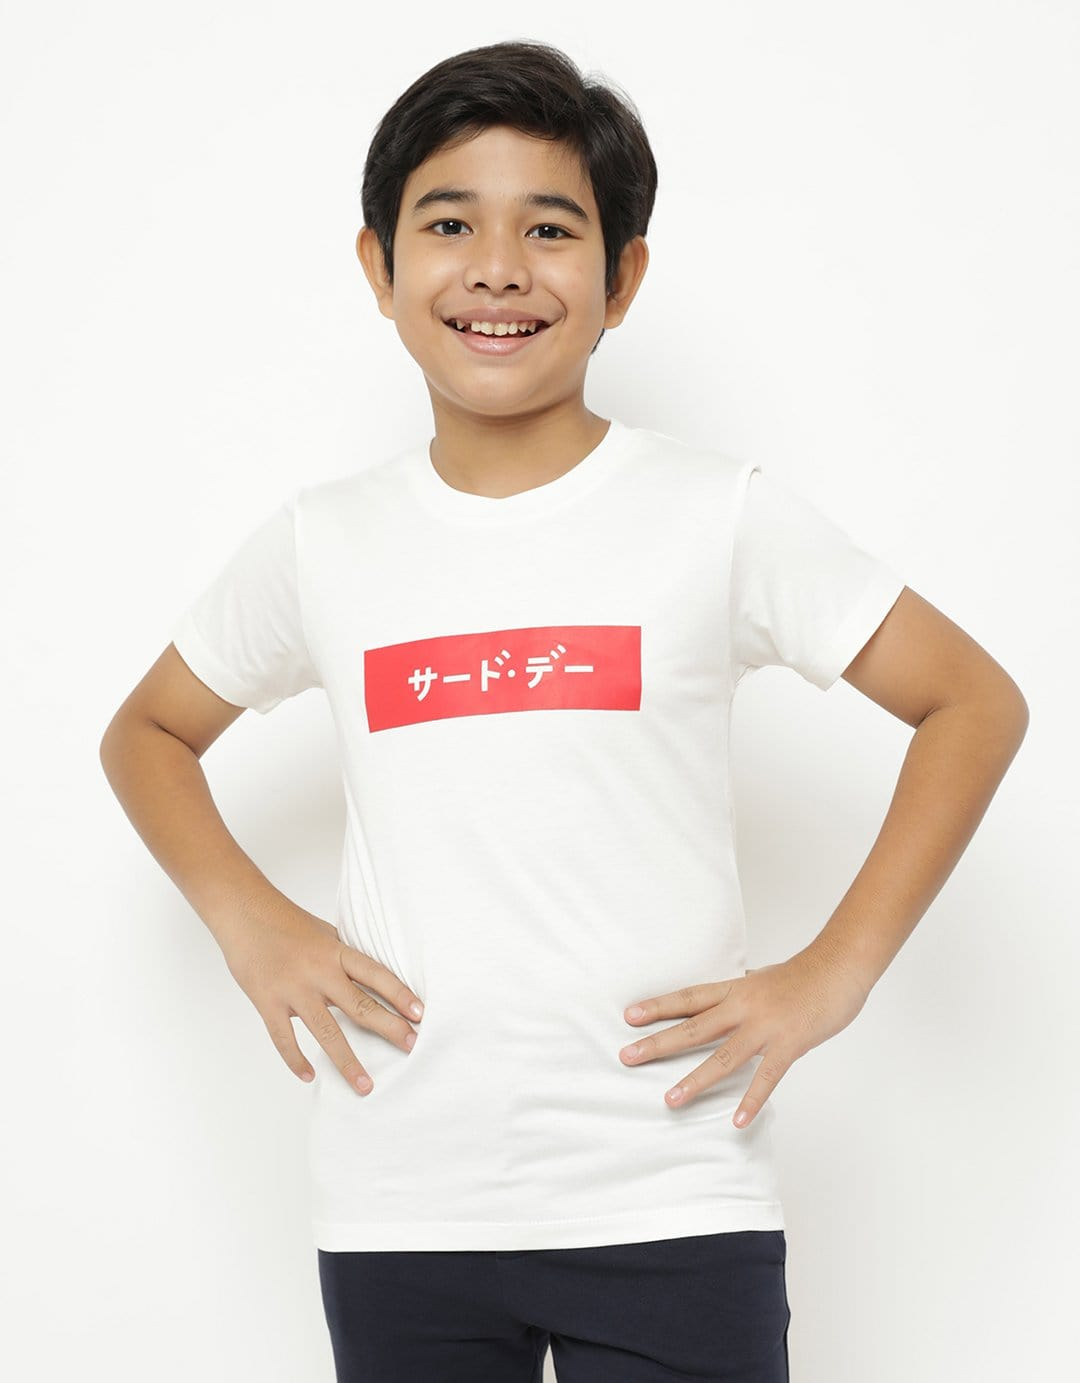 BT181 thirdday kaos anak katakana merah inverted putih